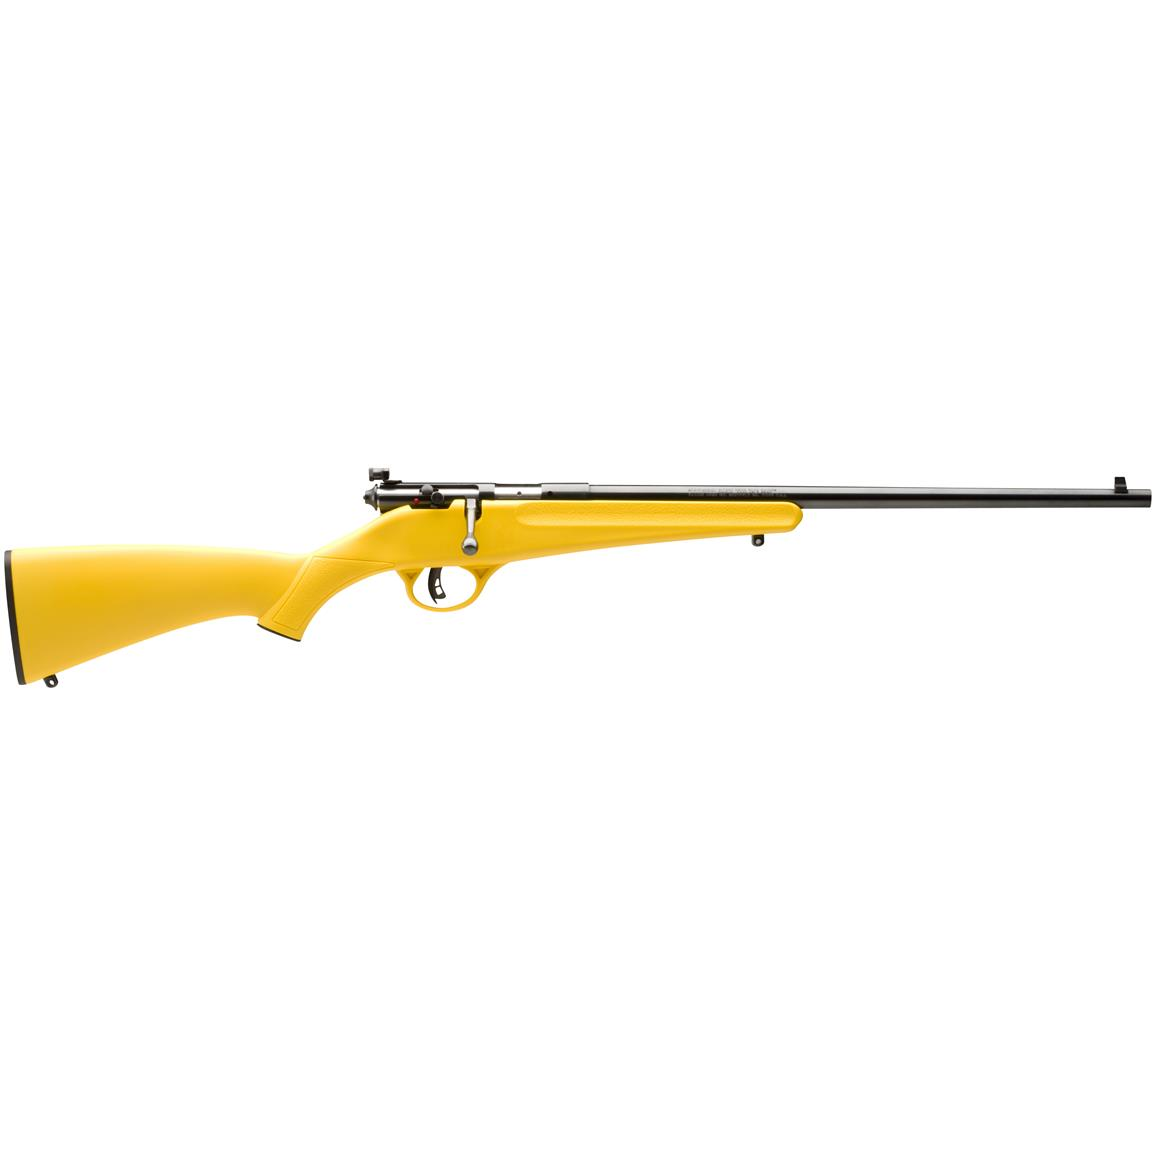 "Savage Rascal Youth, Bolt Action, .22LR, Rimfire, 16.125"" Barrel Yellow Synthetic Stock, 1 Round"